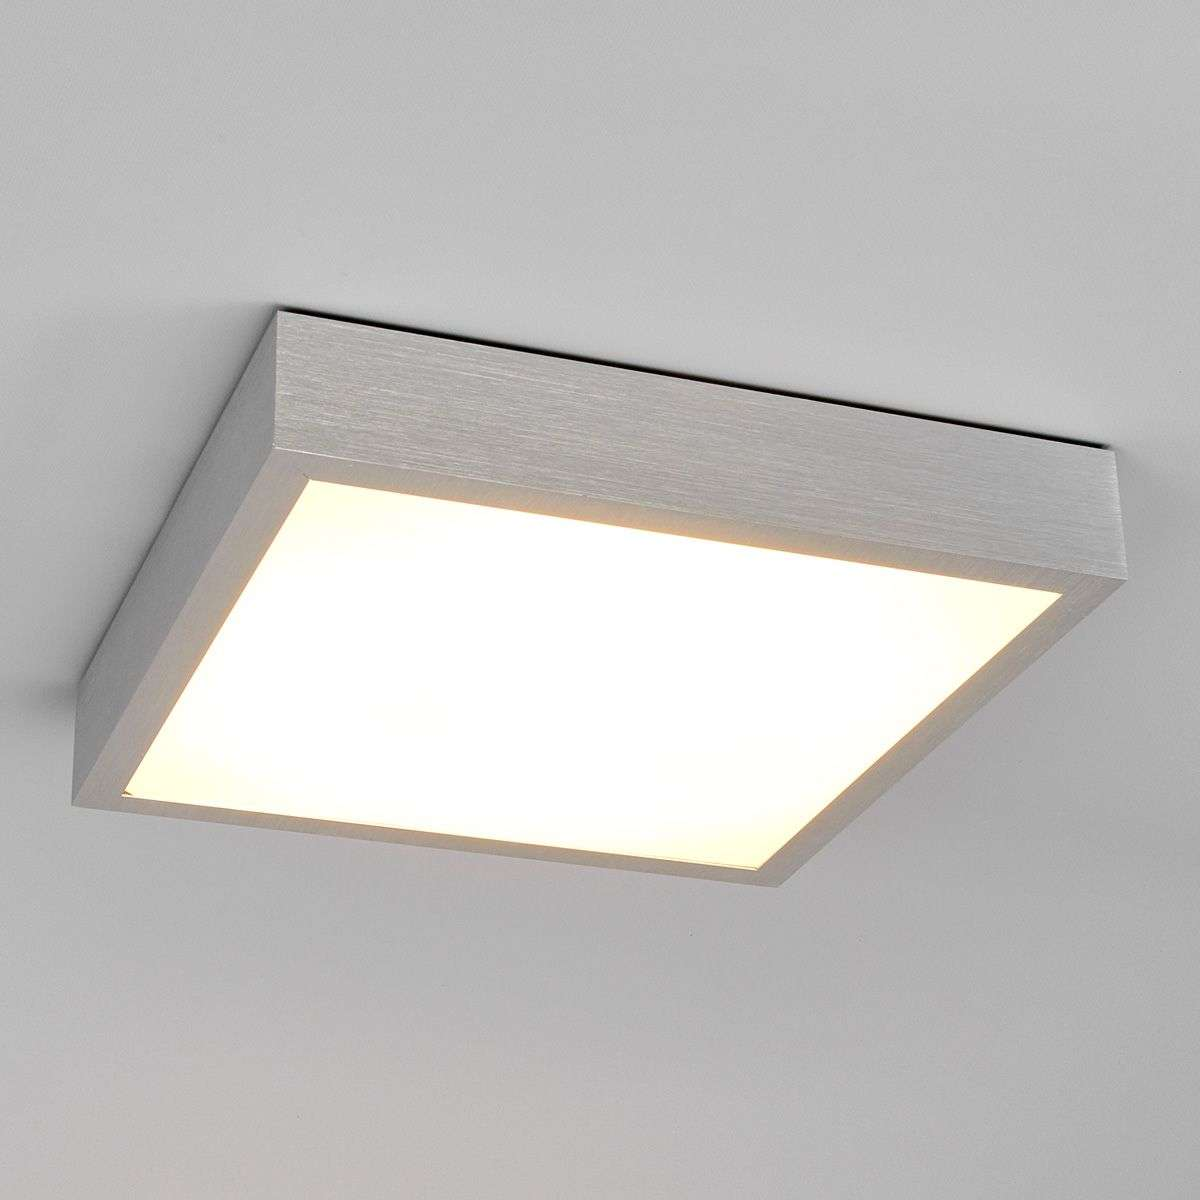 Finnian square led ceiling light aluminium lights finnian square led ceiling light aluminium aloadofball Choice Image